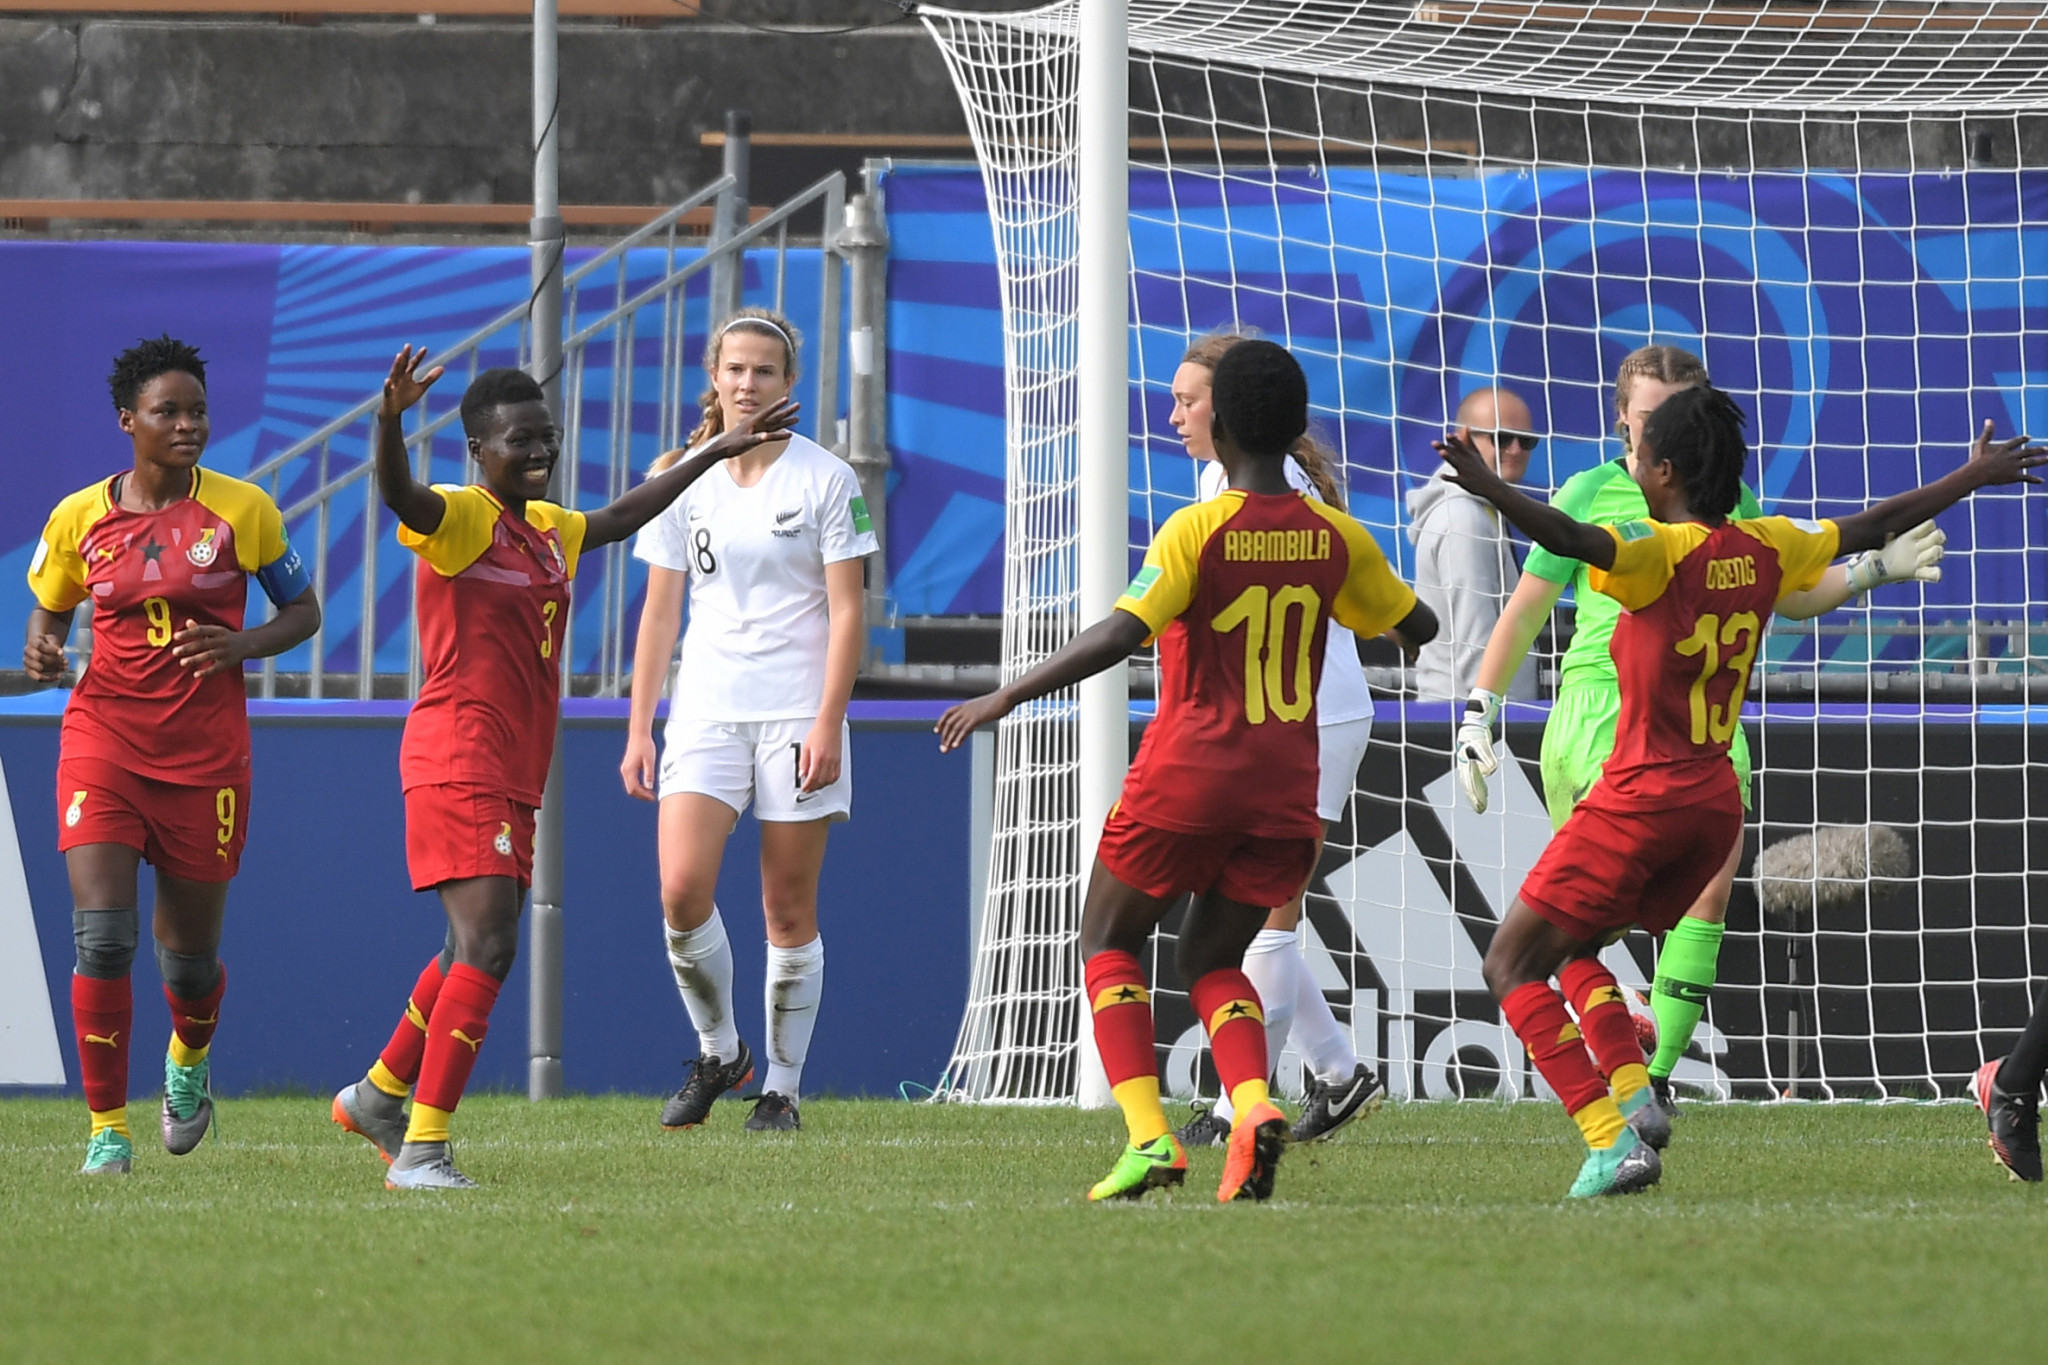 Reports emerged this week that Ghana had been stripped of the 2018 Women's Africa Cup of Nations ©Getty Images